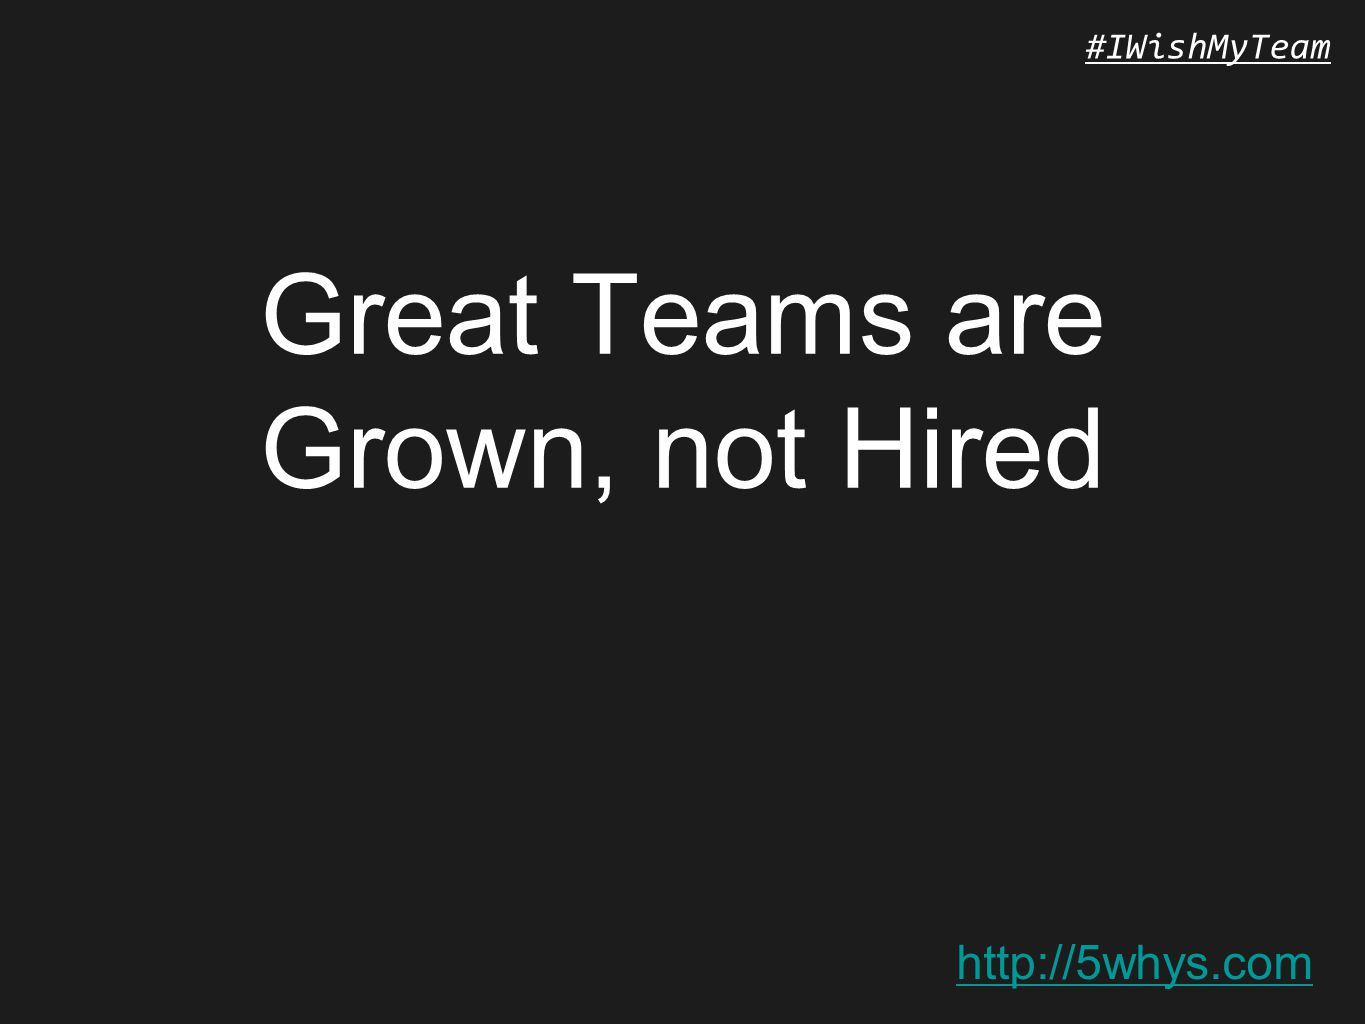 http://5whys.com #IWishMyTeam Great Teams are Grown, not Hired